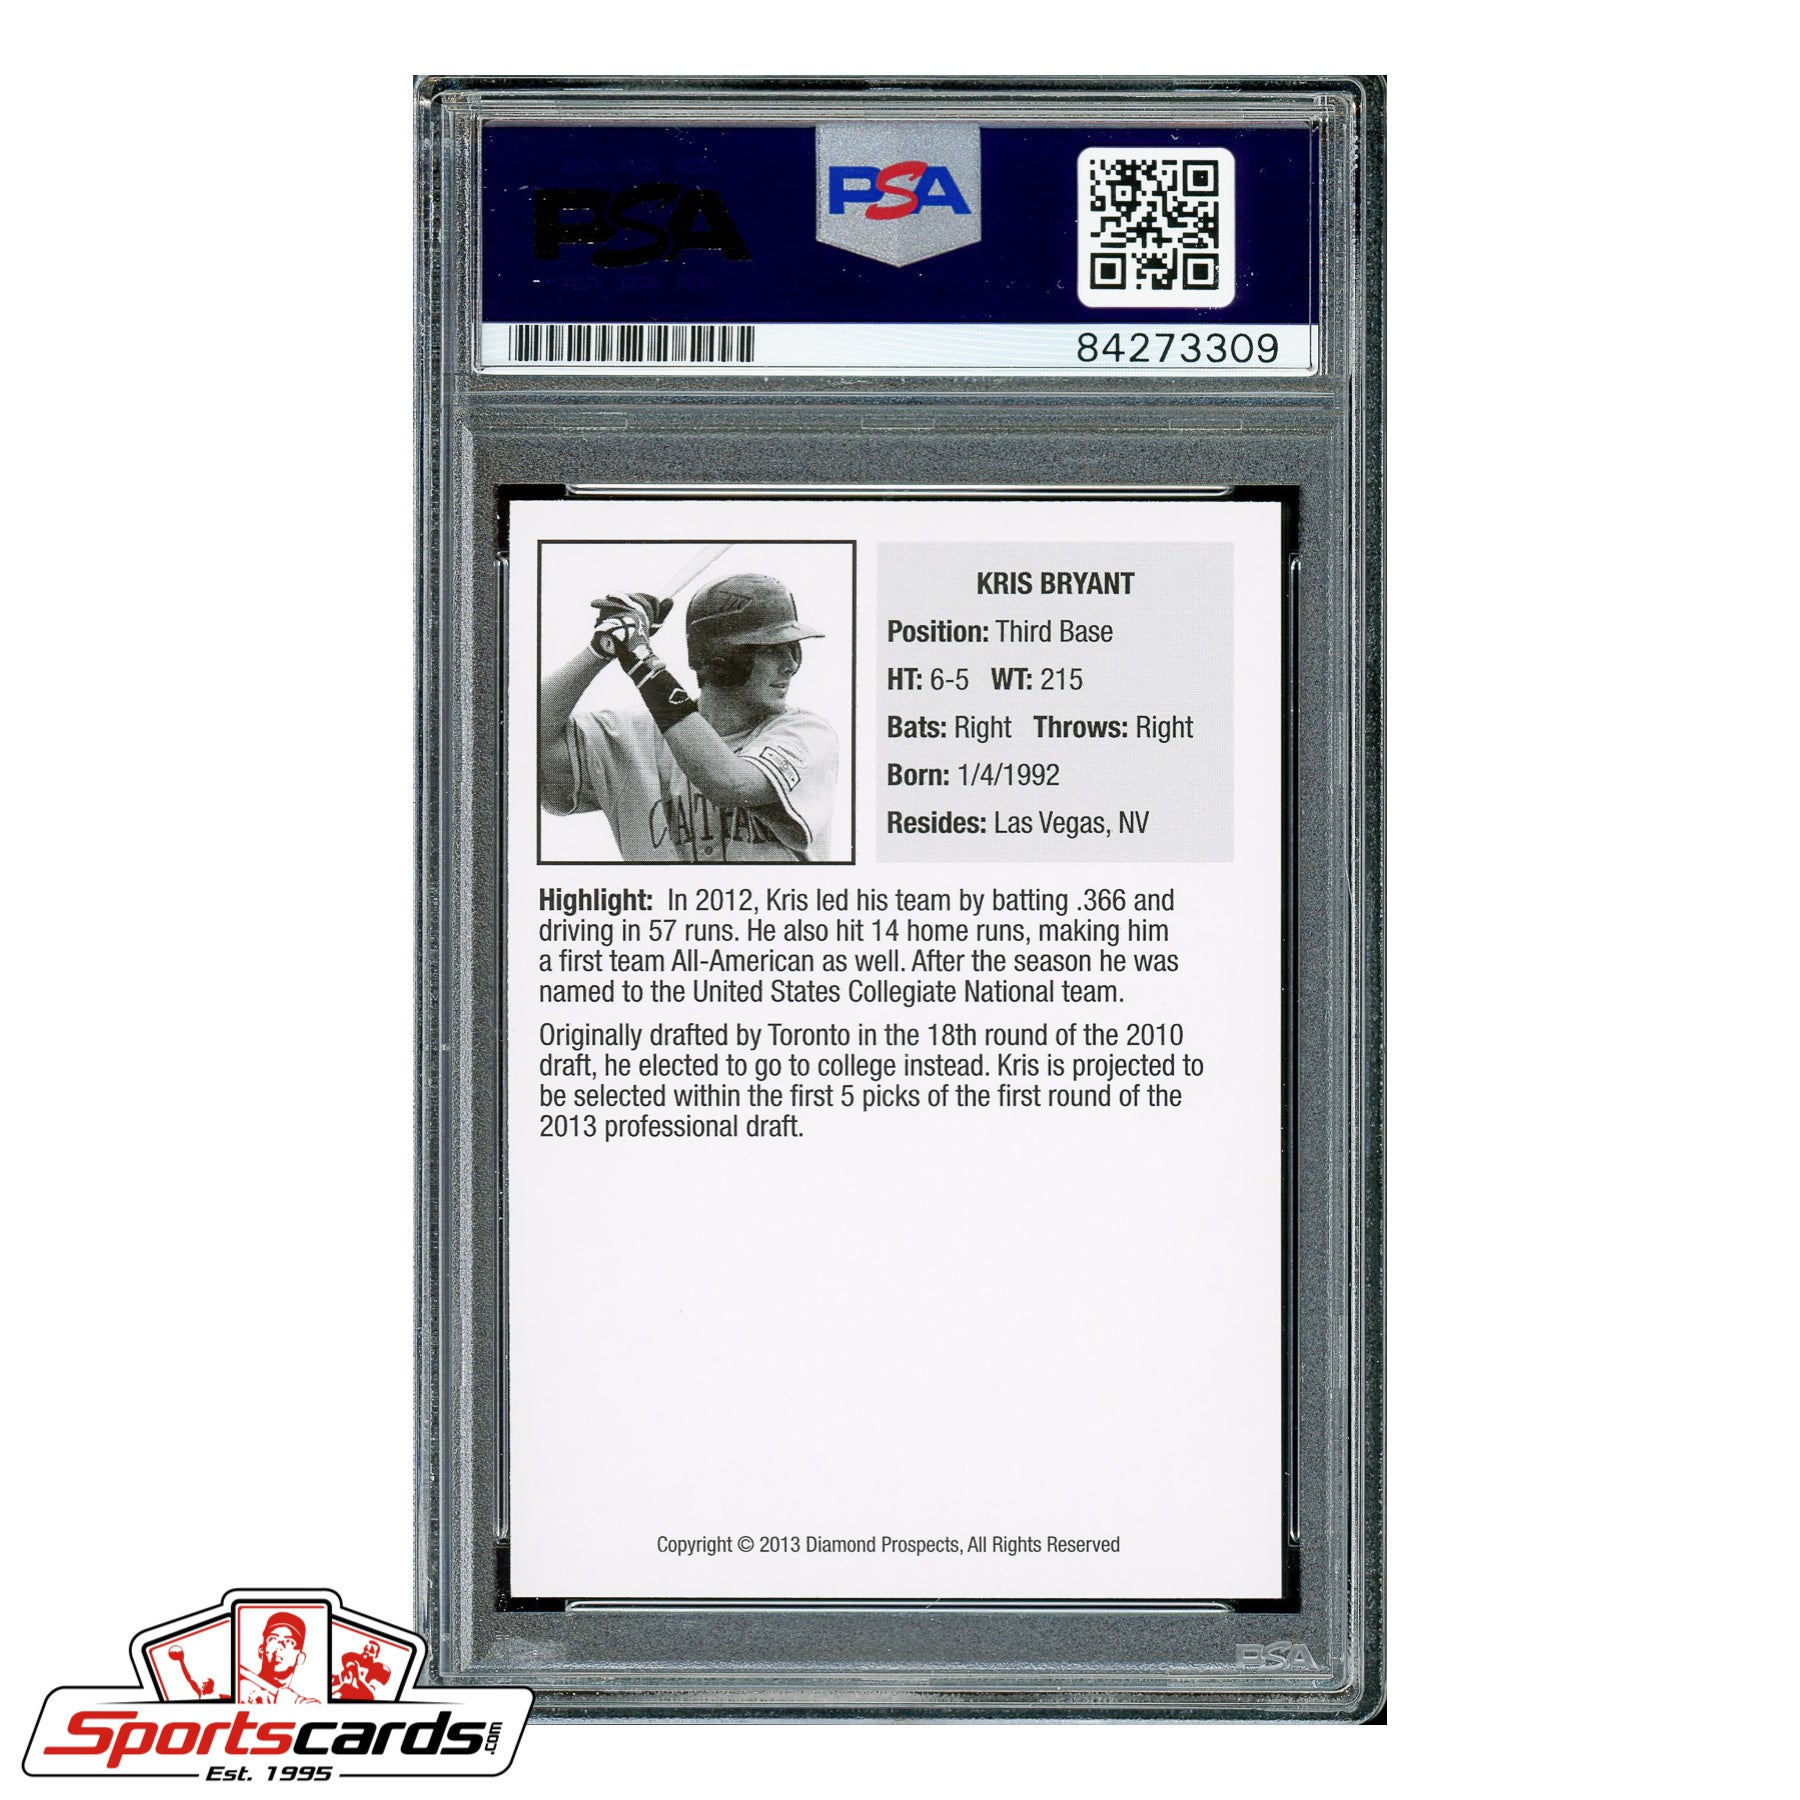 Kris Bryant Signed Auto 2013 Diamond Prospects RC PSA